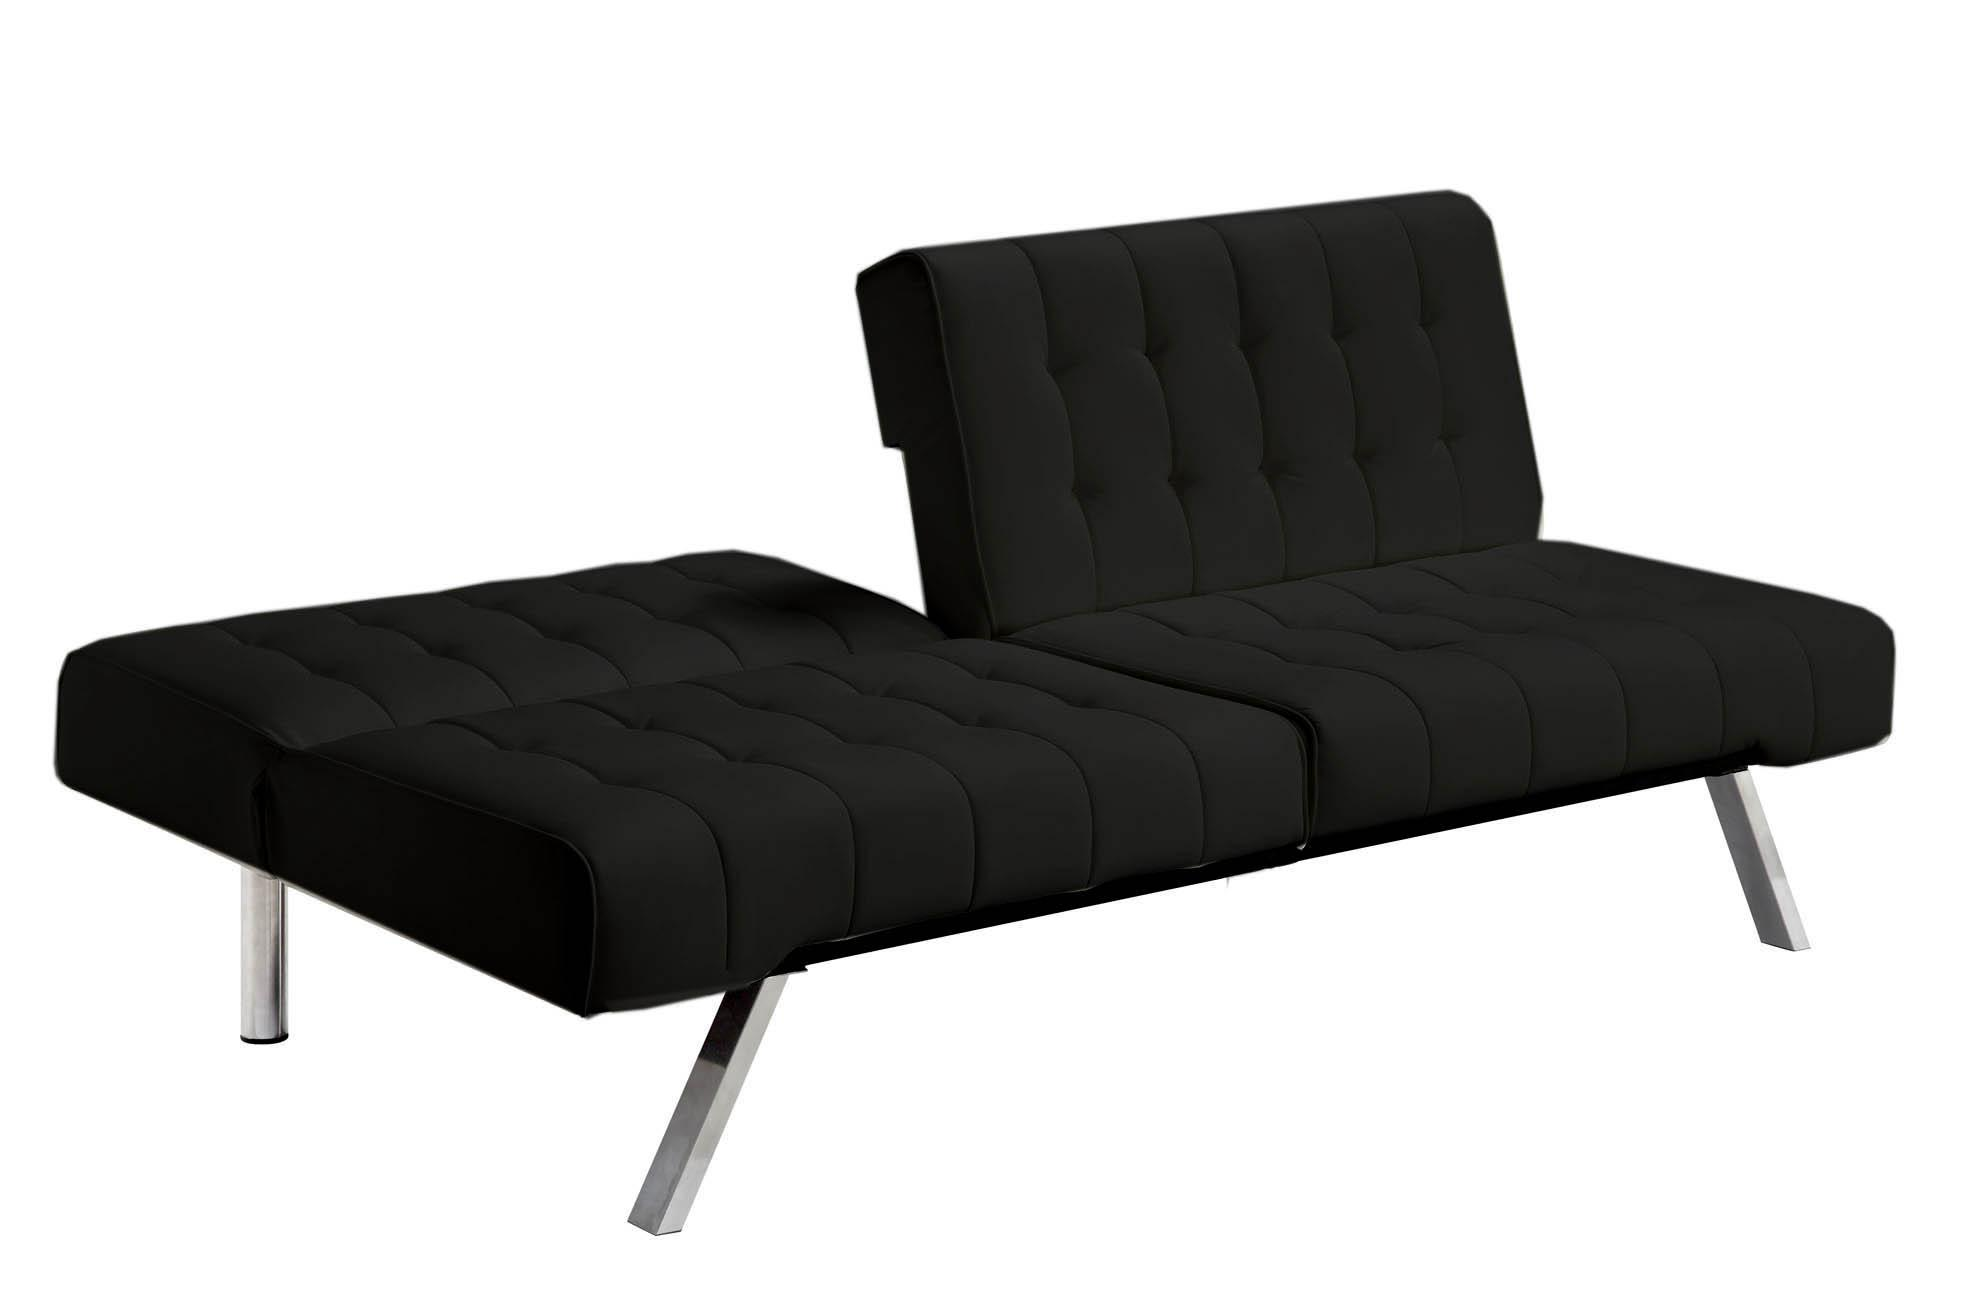 Dorel Emily Convertible Futon by OJ merce $175 20